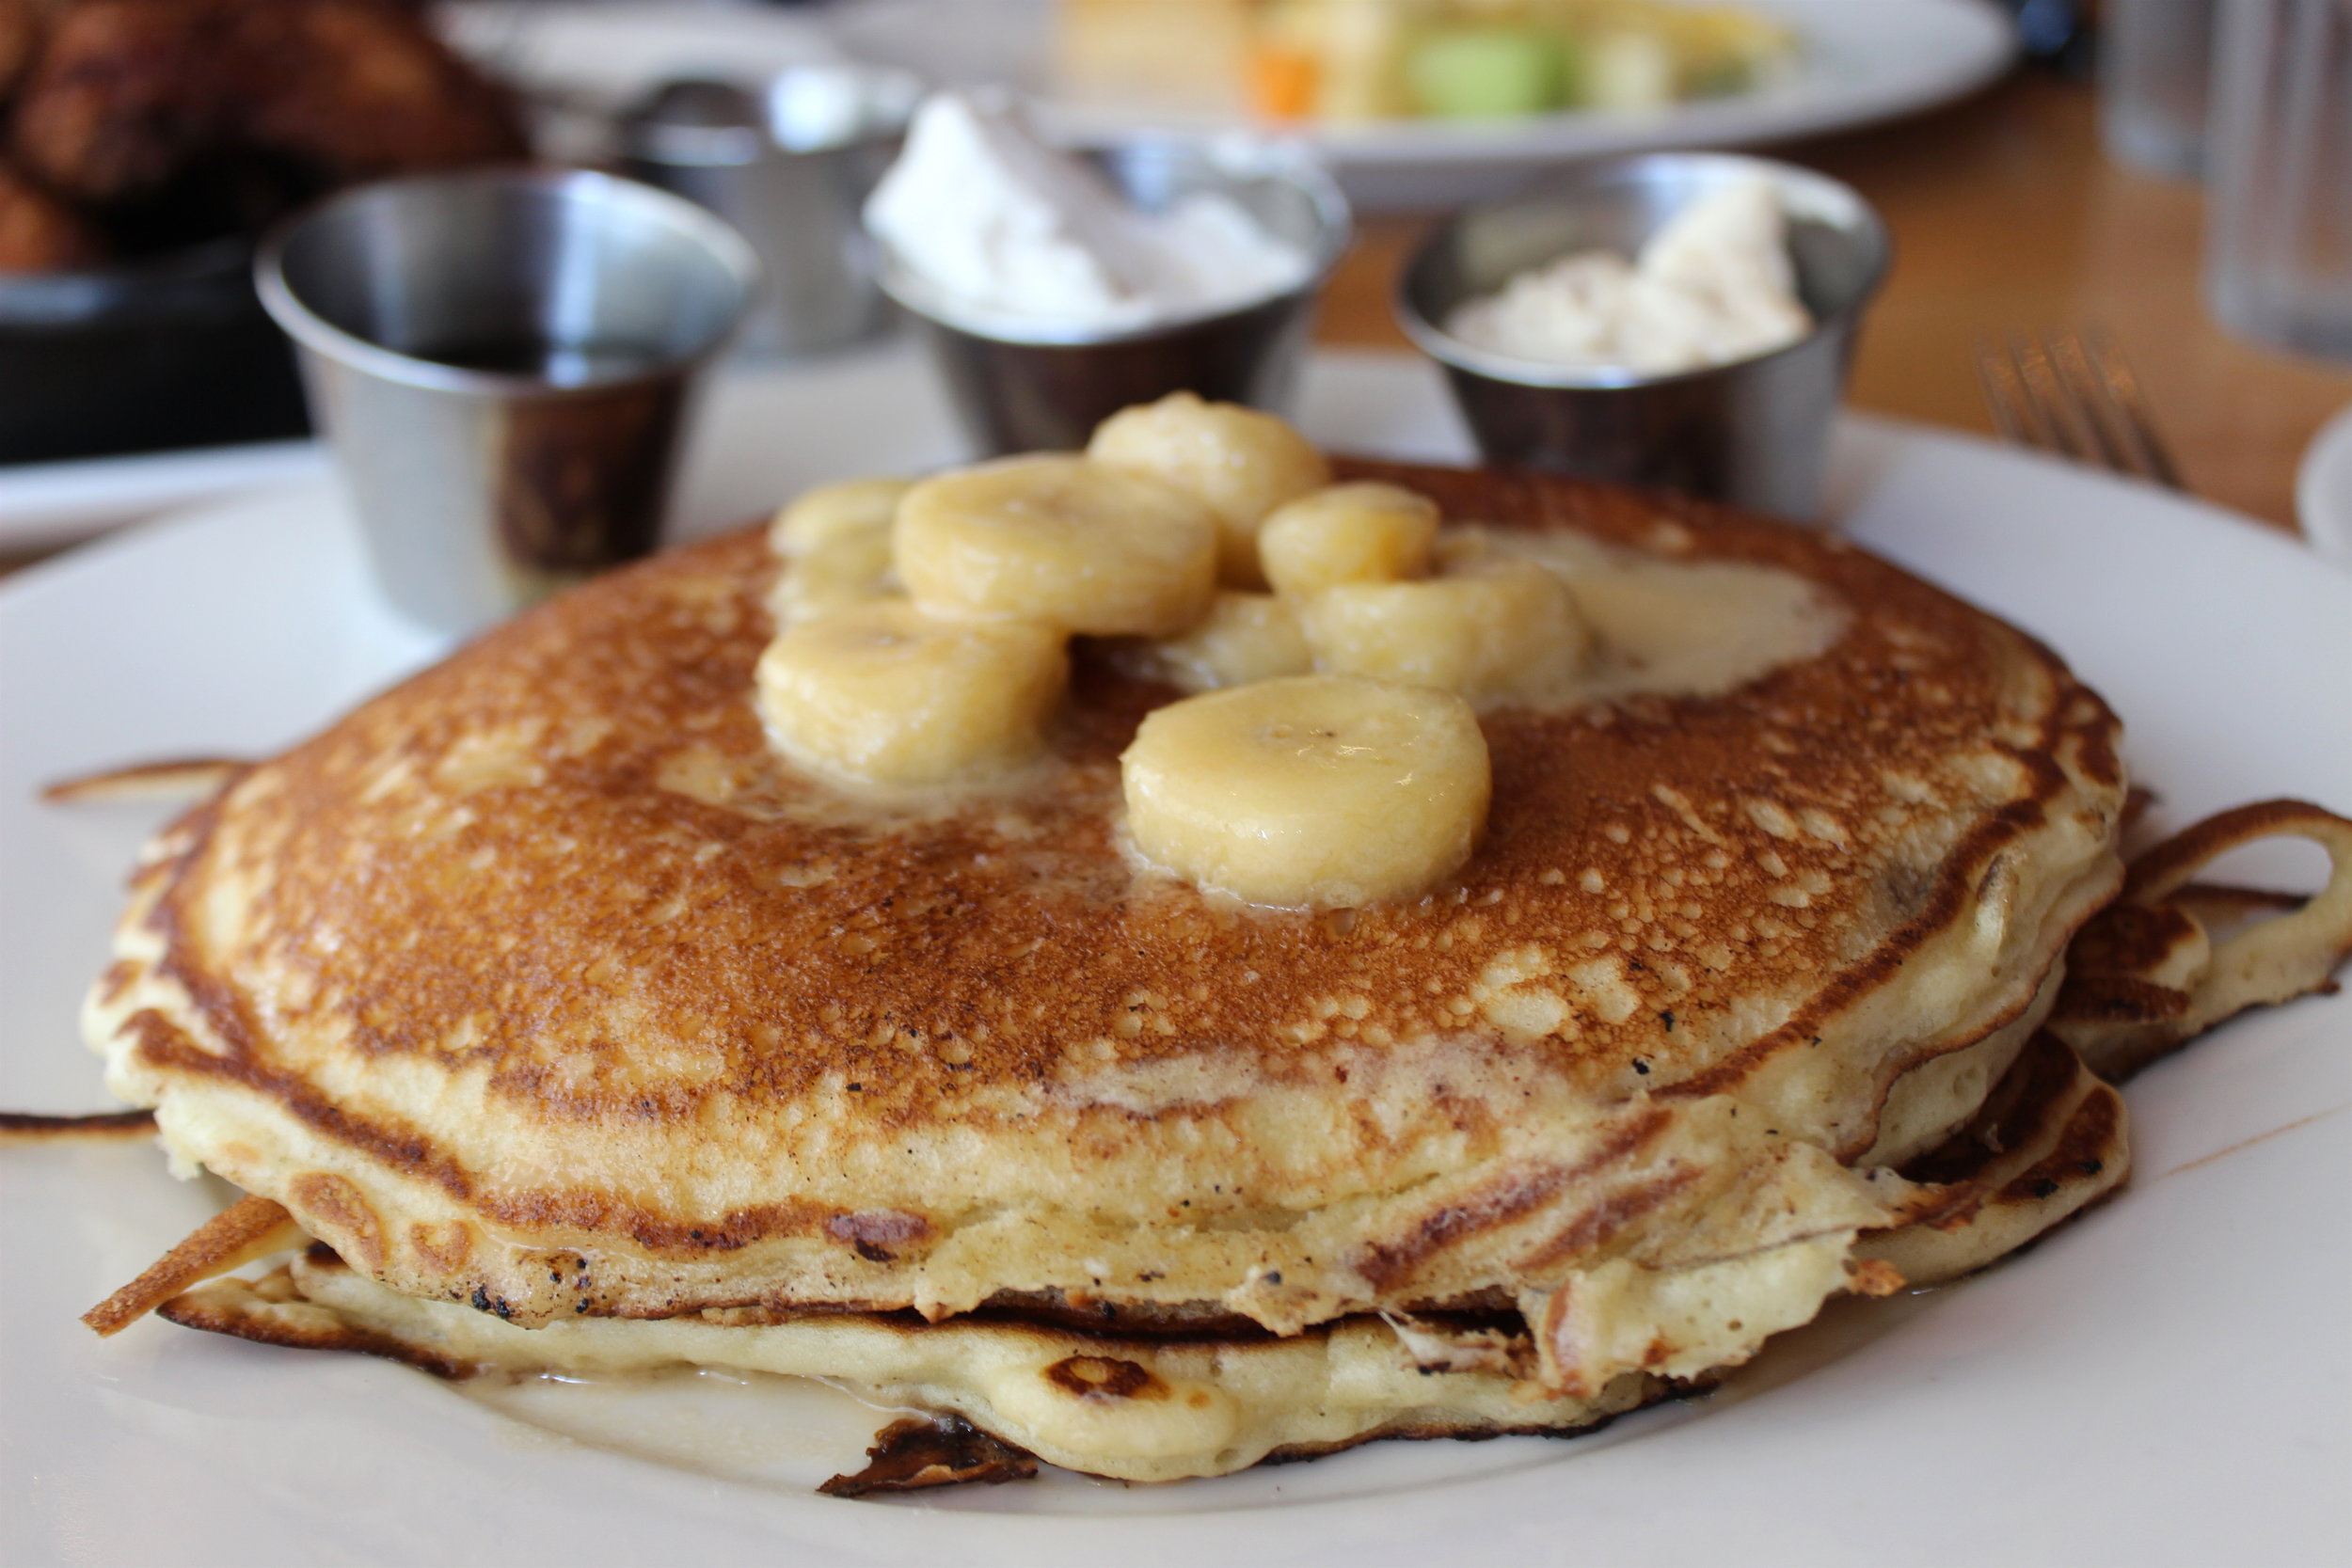 '77 Elvis Pancakes: Chocolate Chip Pancakes, Banana Compote, Bourbon Maple Syrup, Peanut Butter